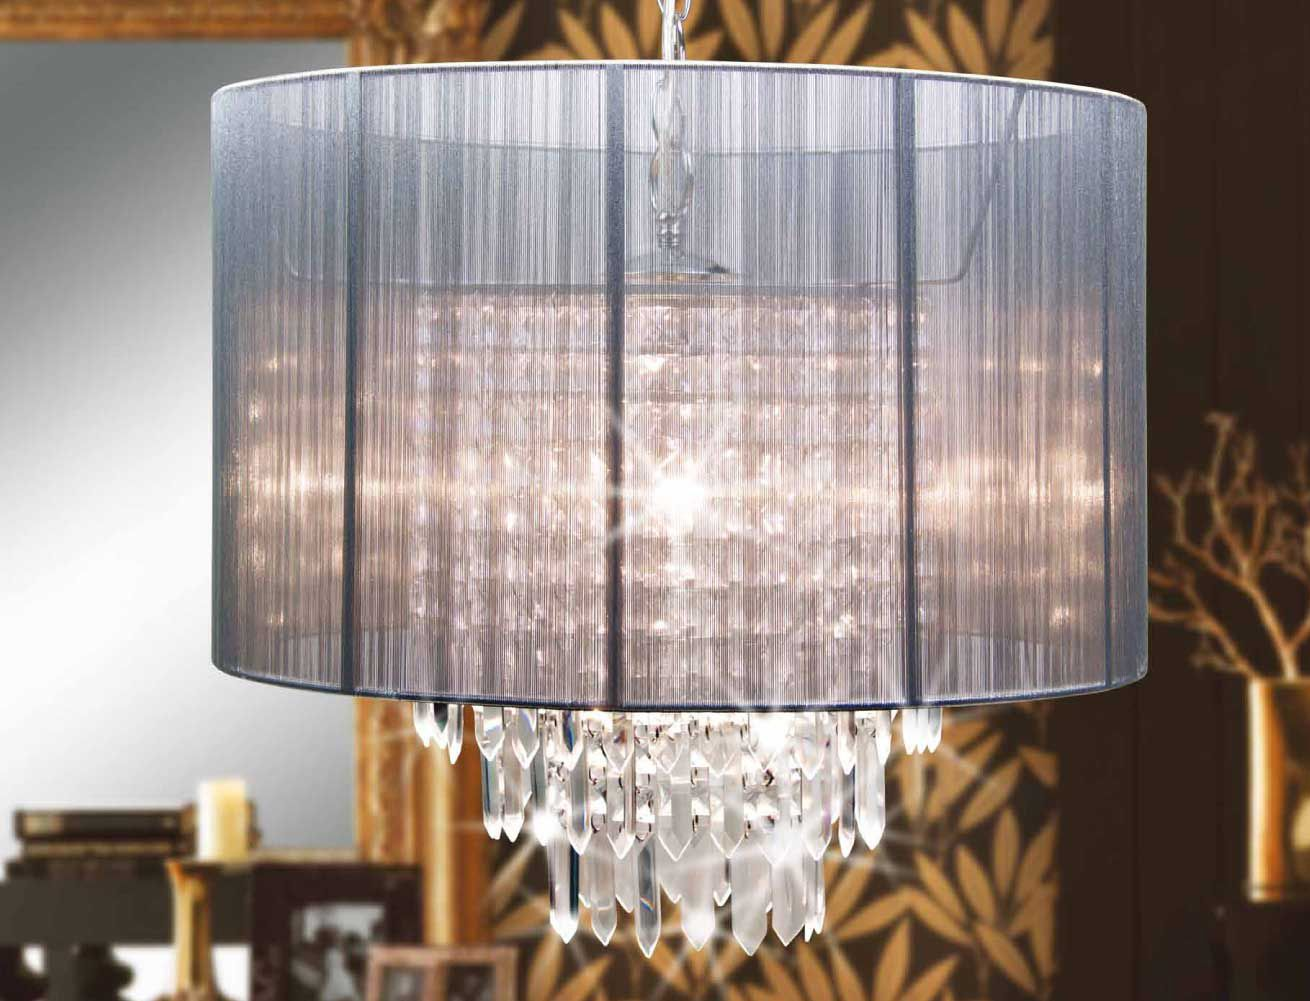 Glowing silver stalactites silver glow light chandeliers glowing silver stalactites silver glow light arubaitofo Image collections